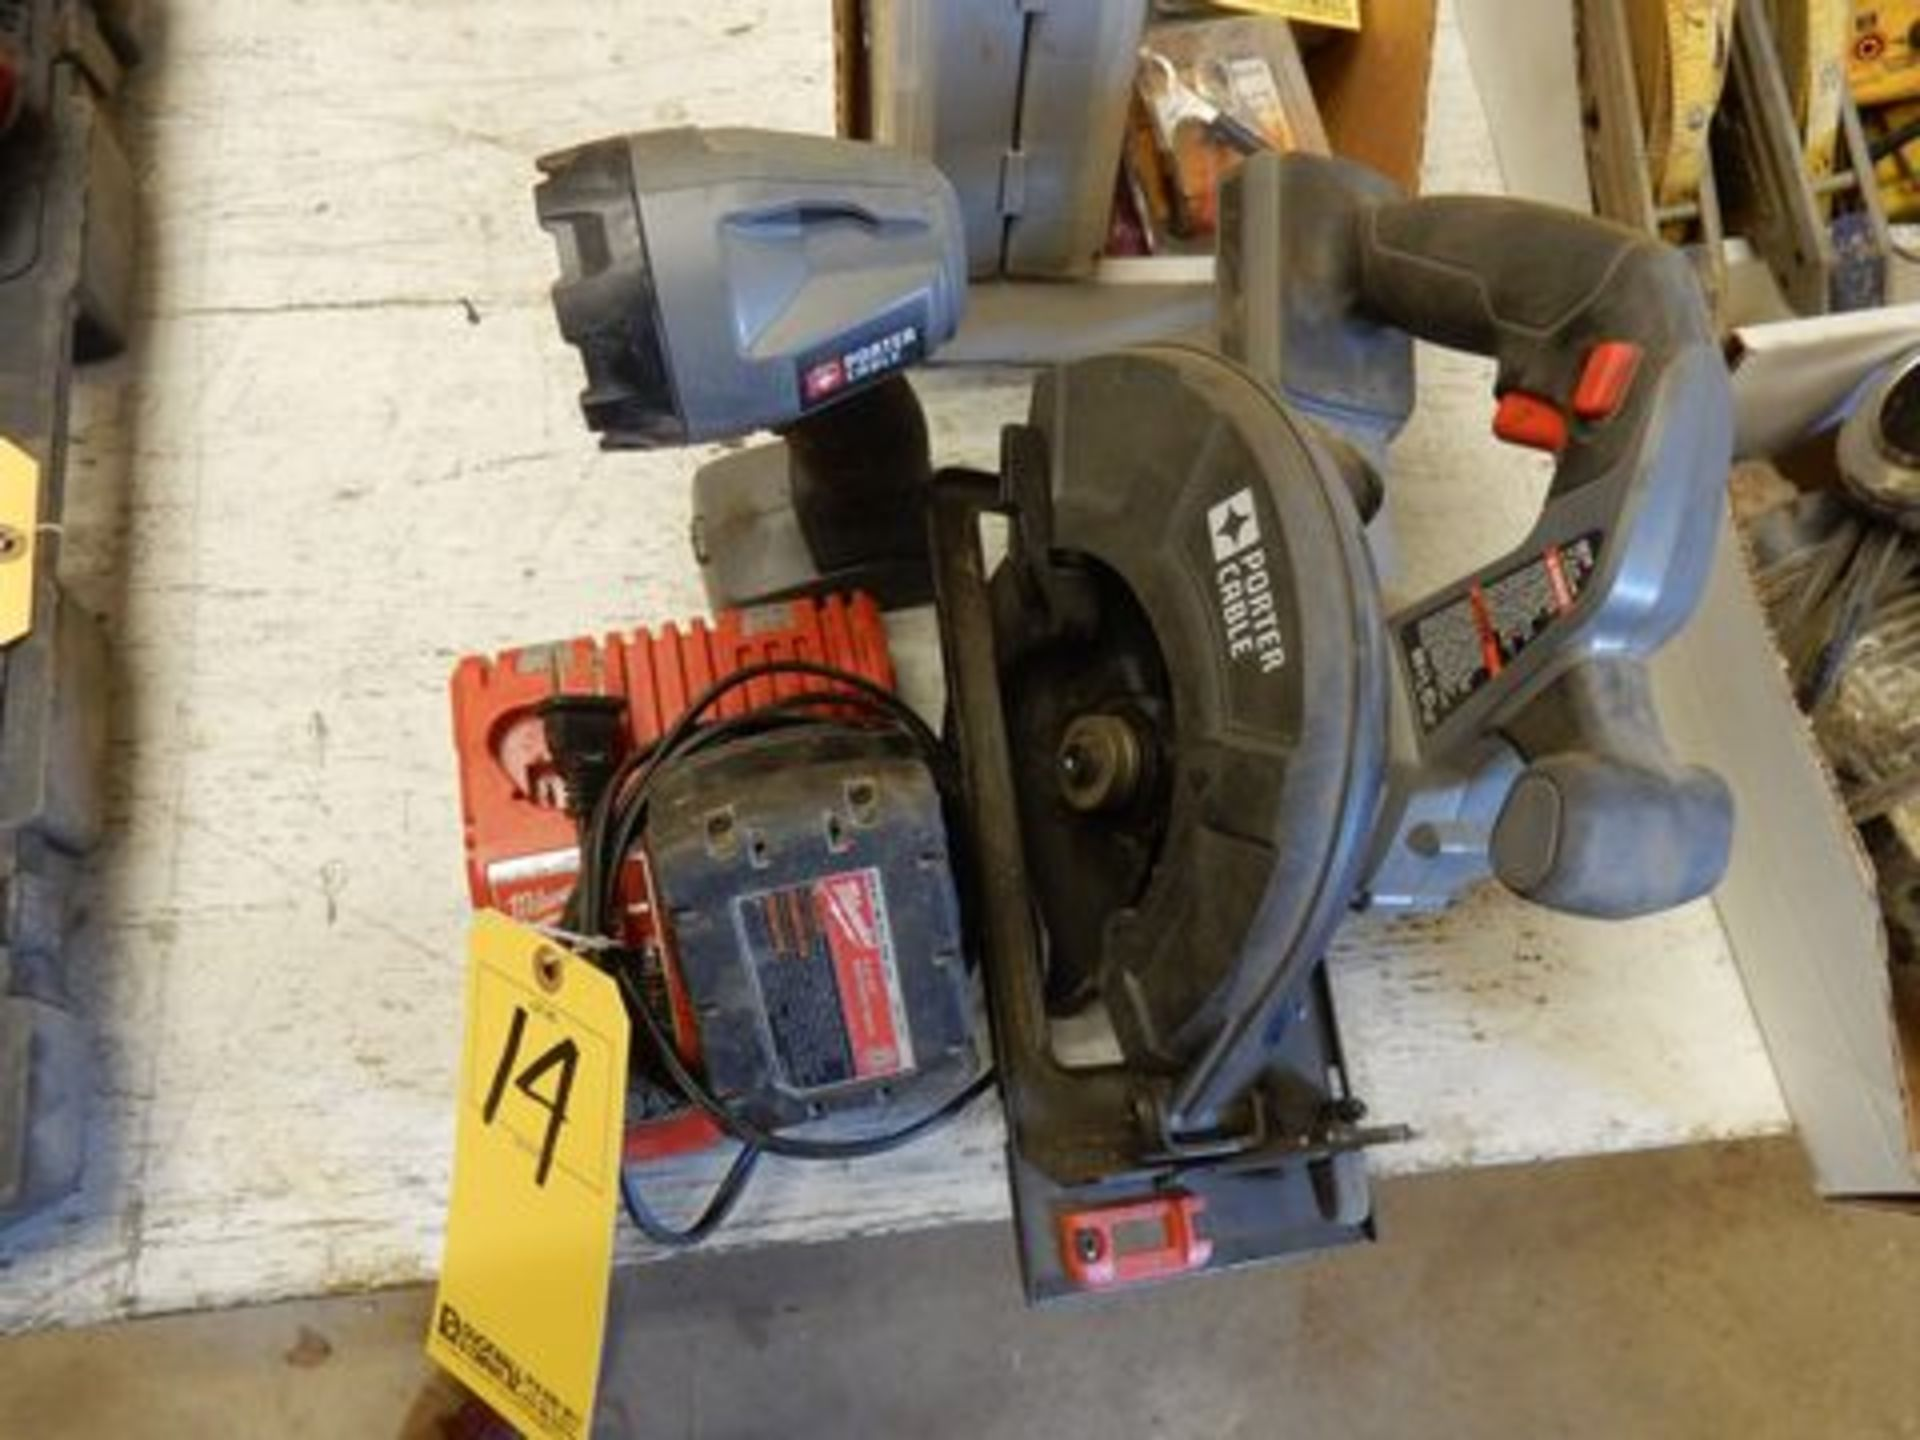 LOT MISC. MILWAUKEE & PORTER CABLE CORDLESS TOOLS TO INCLUDE: FLASHLIGHT, CIRCULAR SAW, CHARGER, ETC